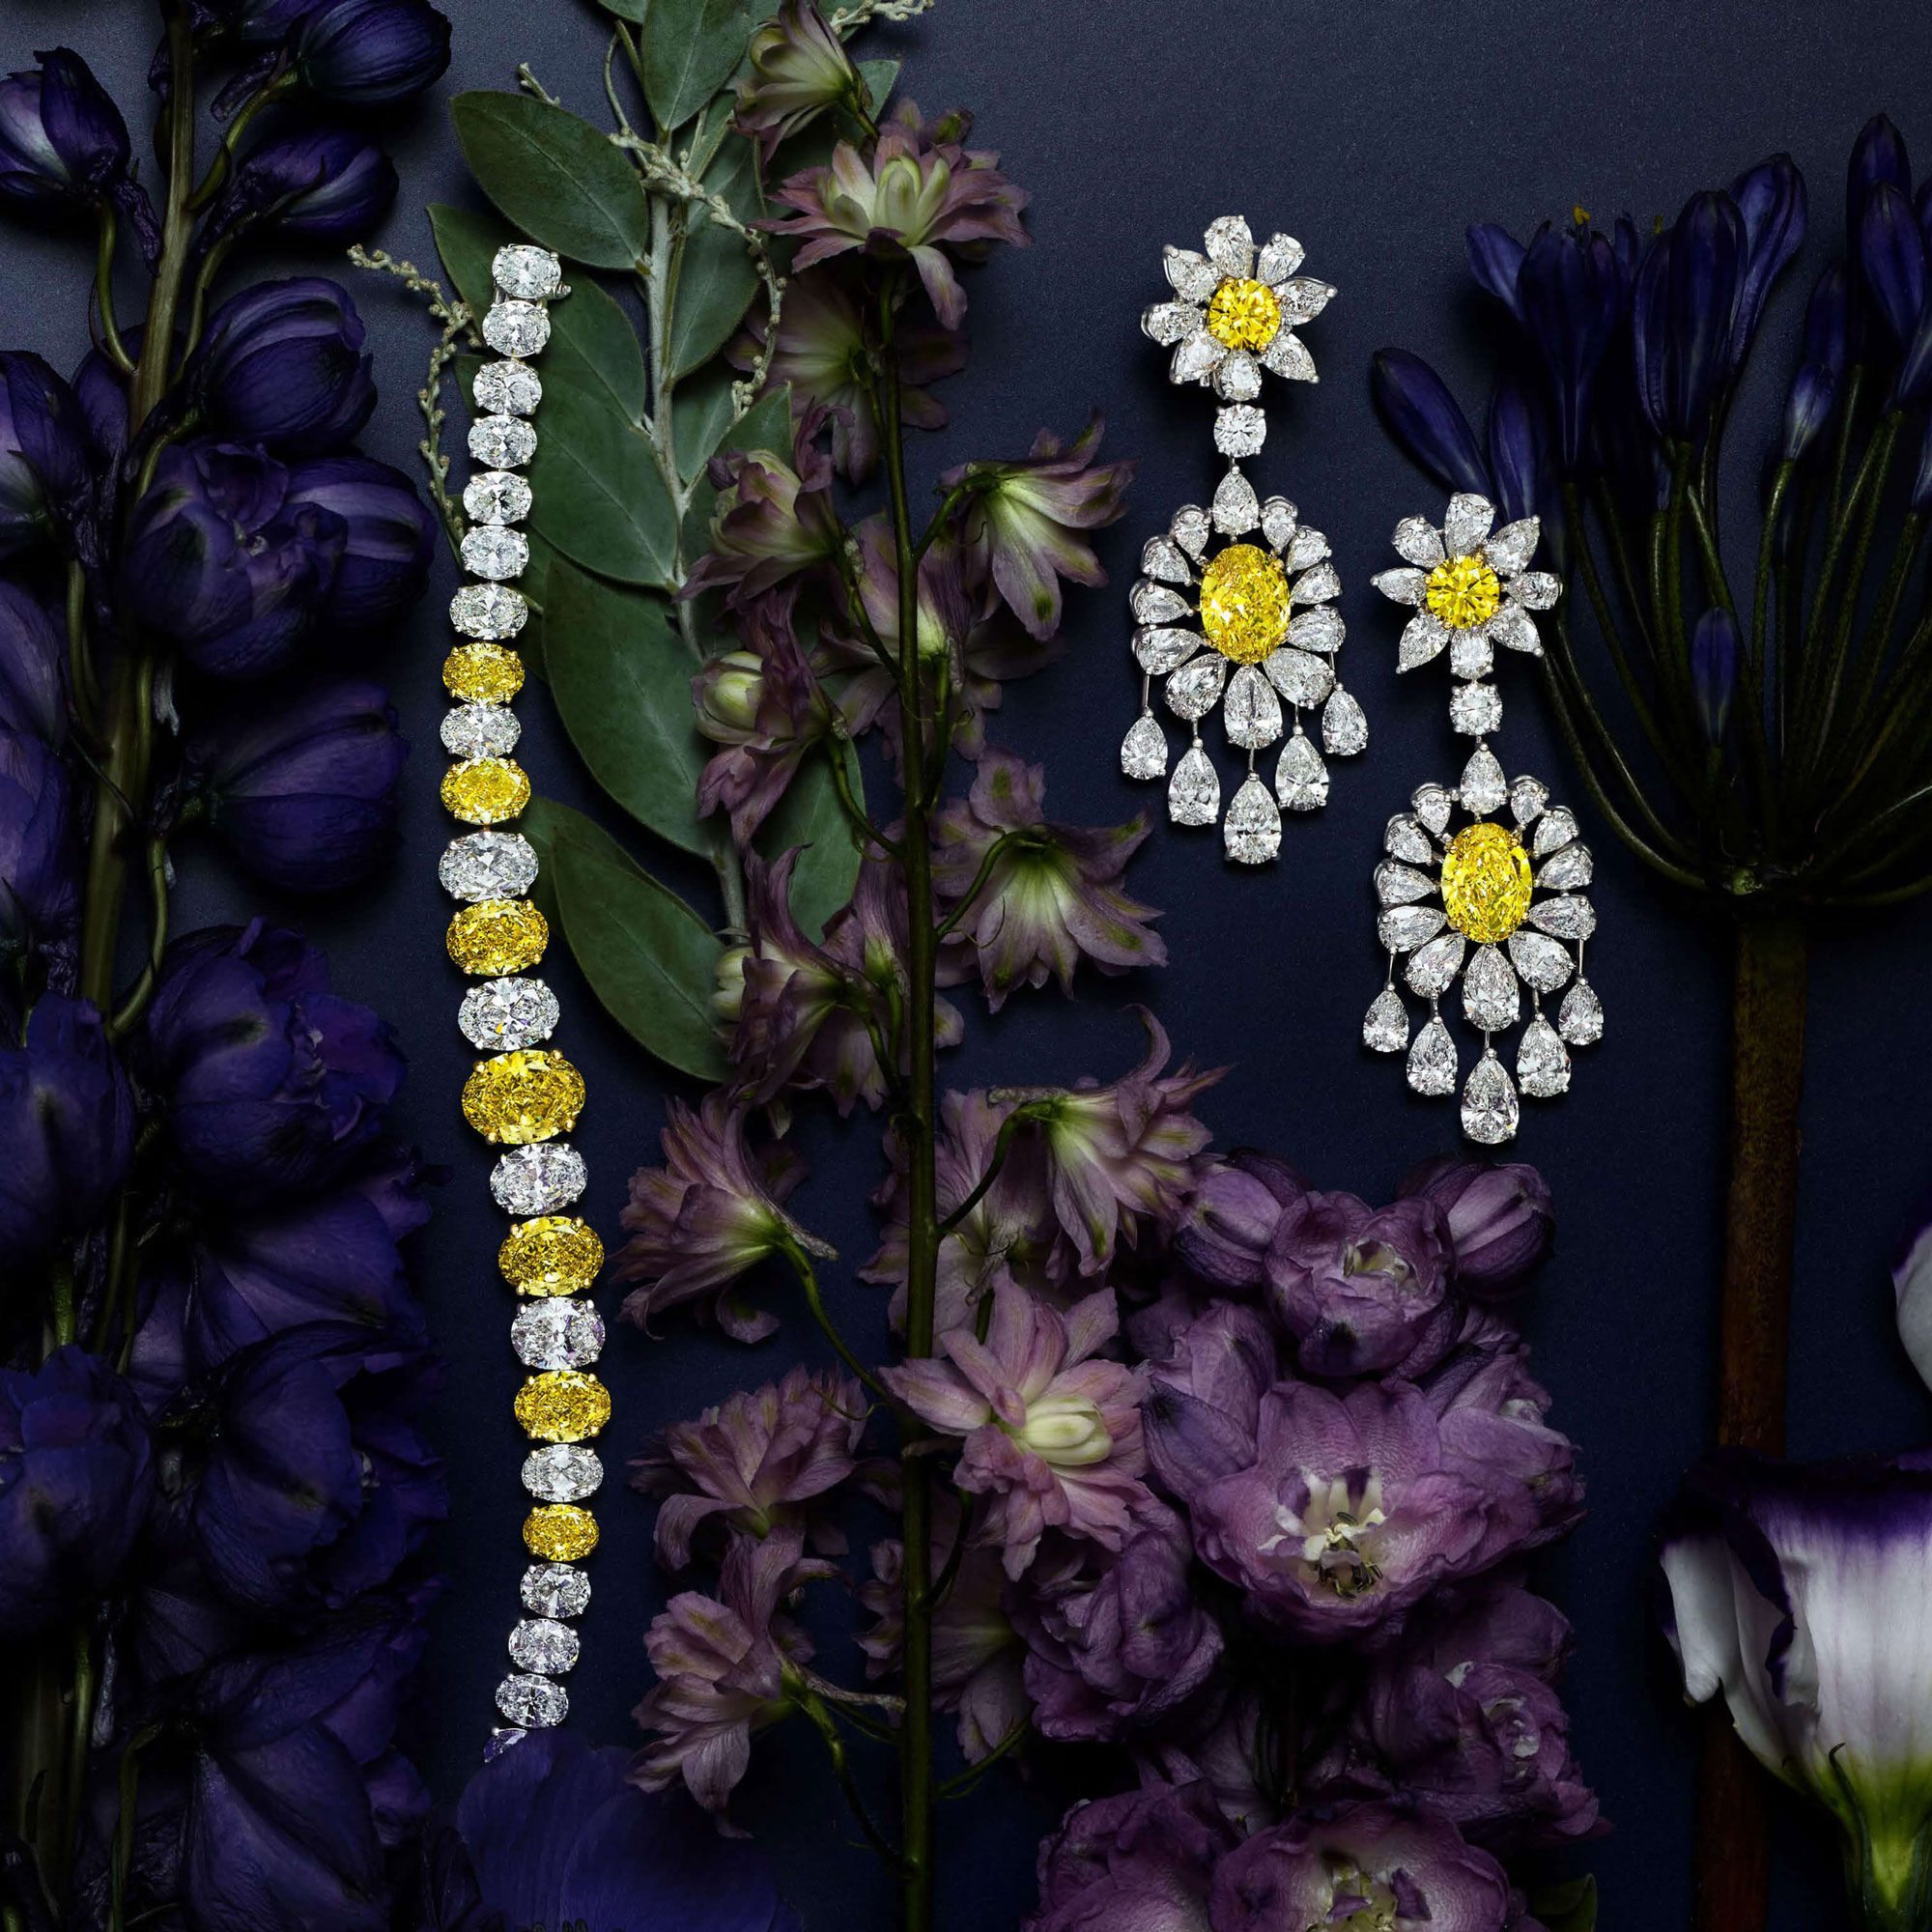 Graff White and yellow diamond High jewellery with flowers decorations